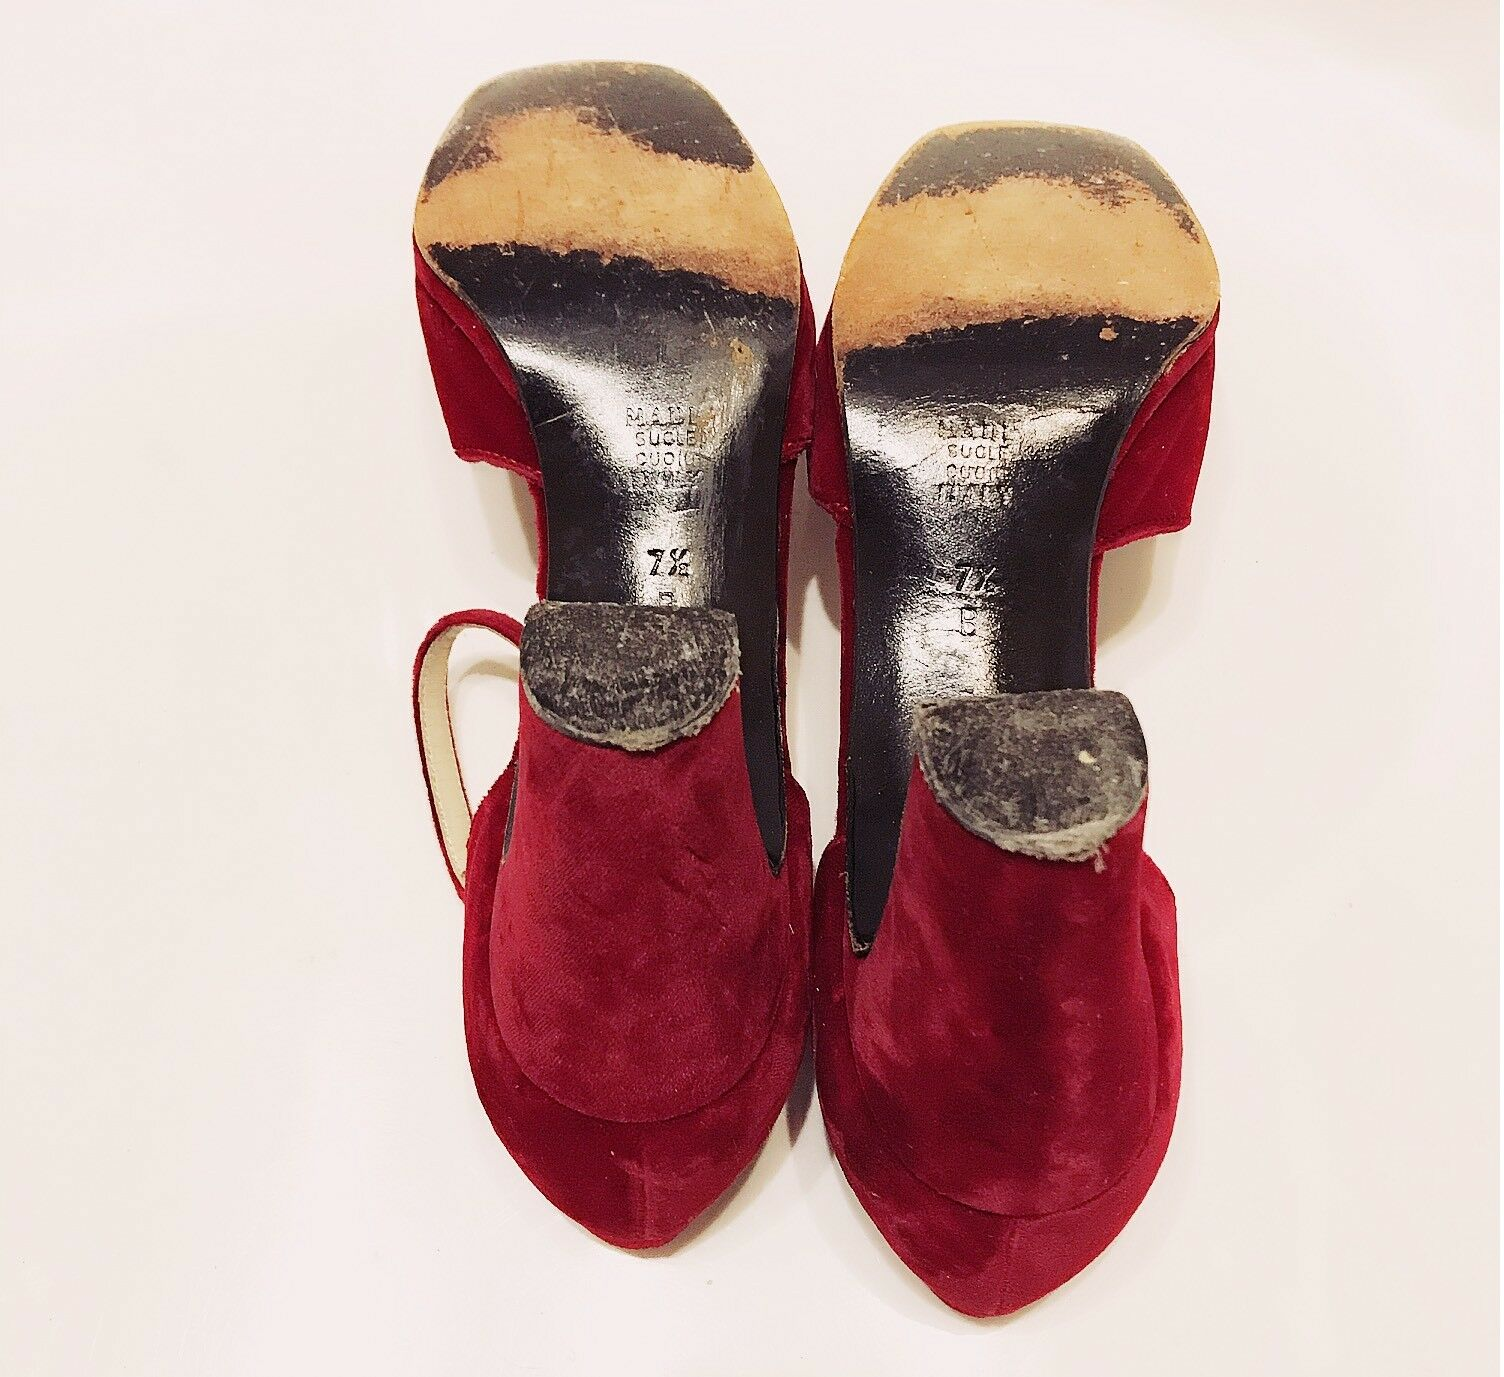 GIVENCHY - Jewel Rhinestone Buckle ROT Velvet Ankle 7.5 Strap High Heel Pumps 7.5 Ankle B 437056